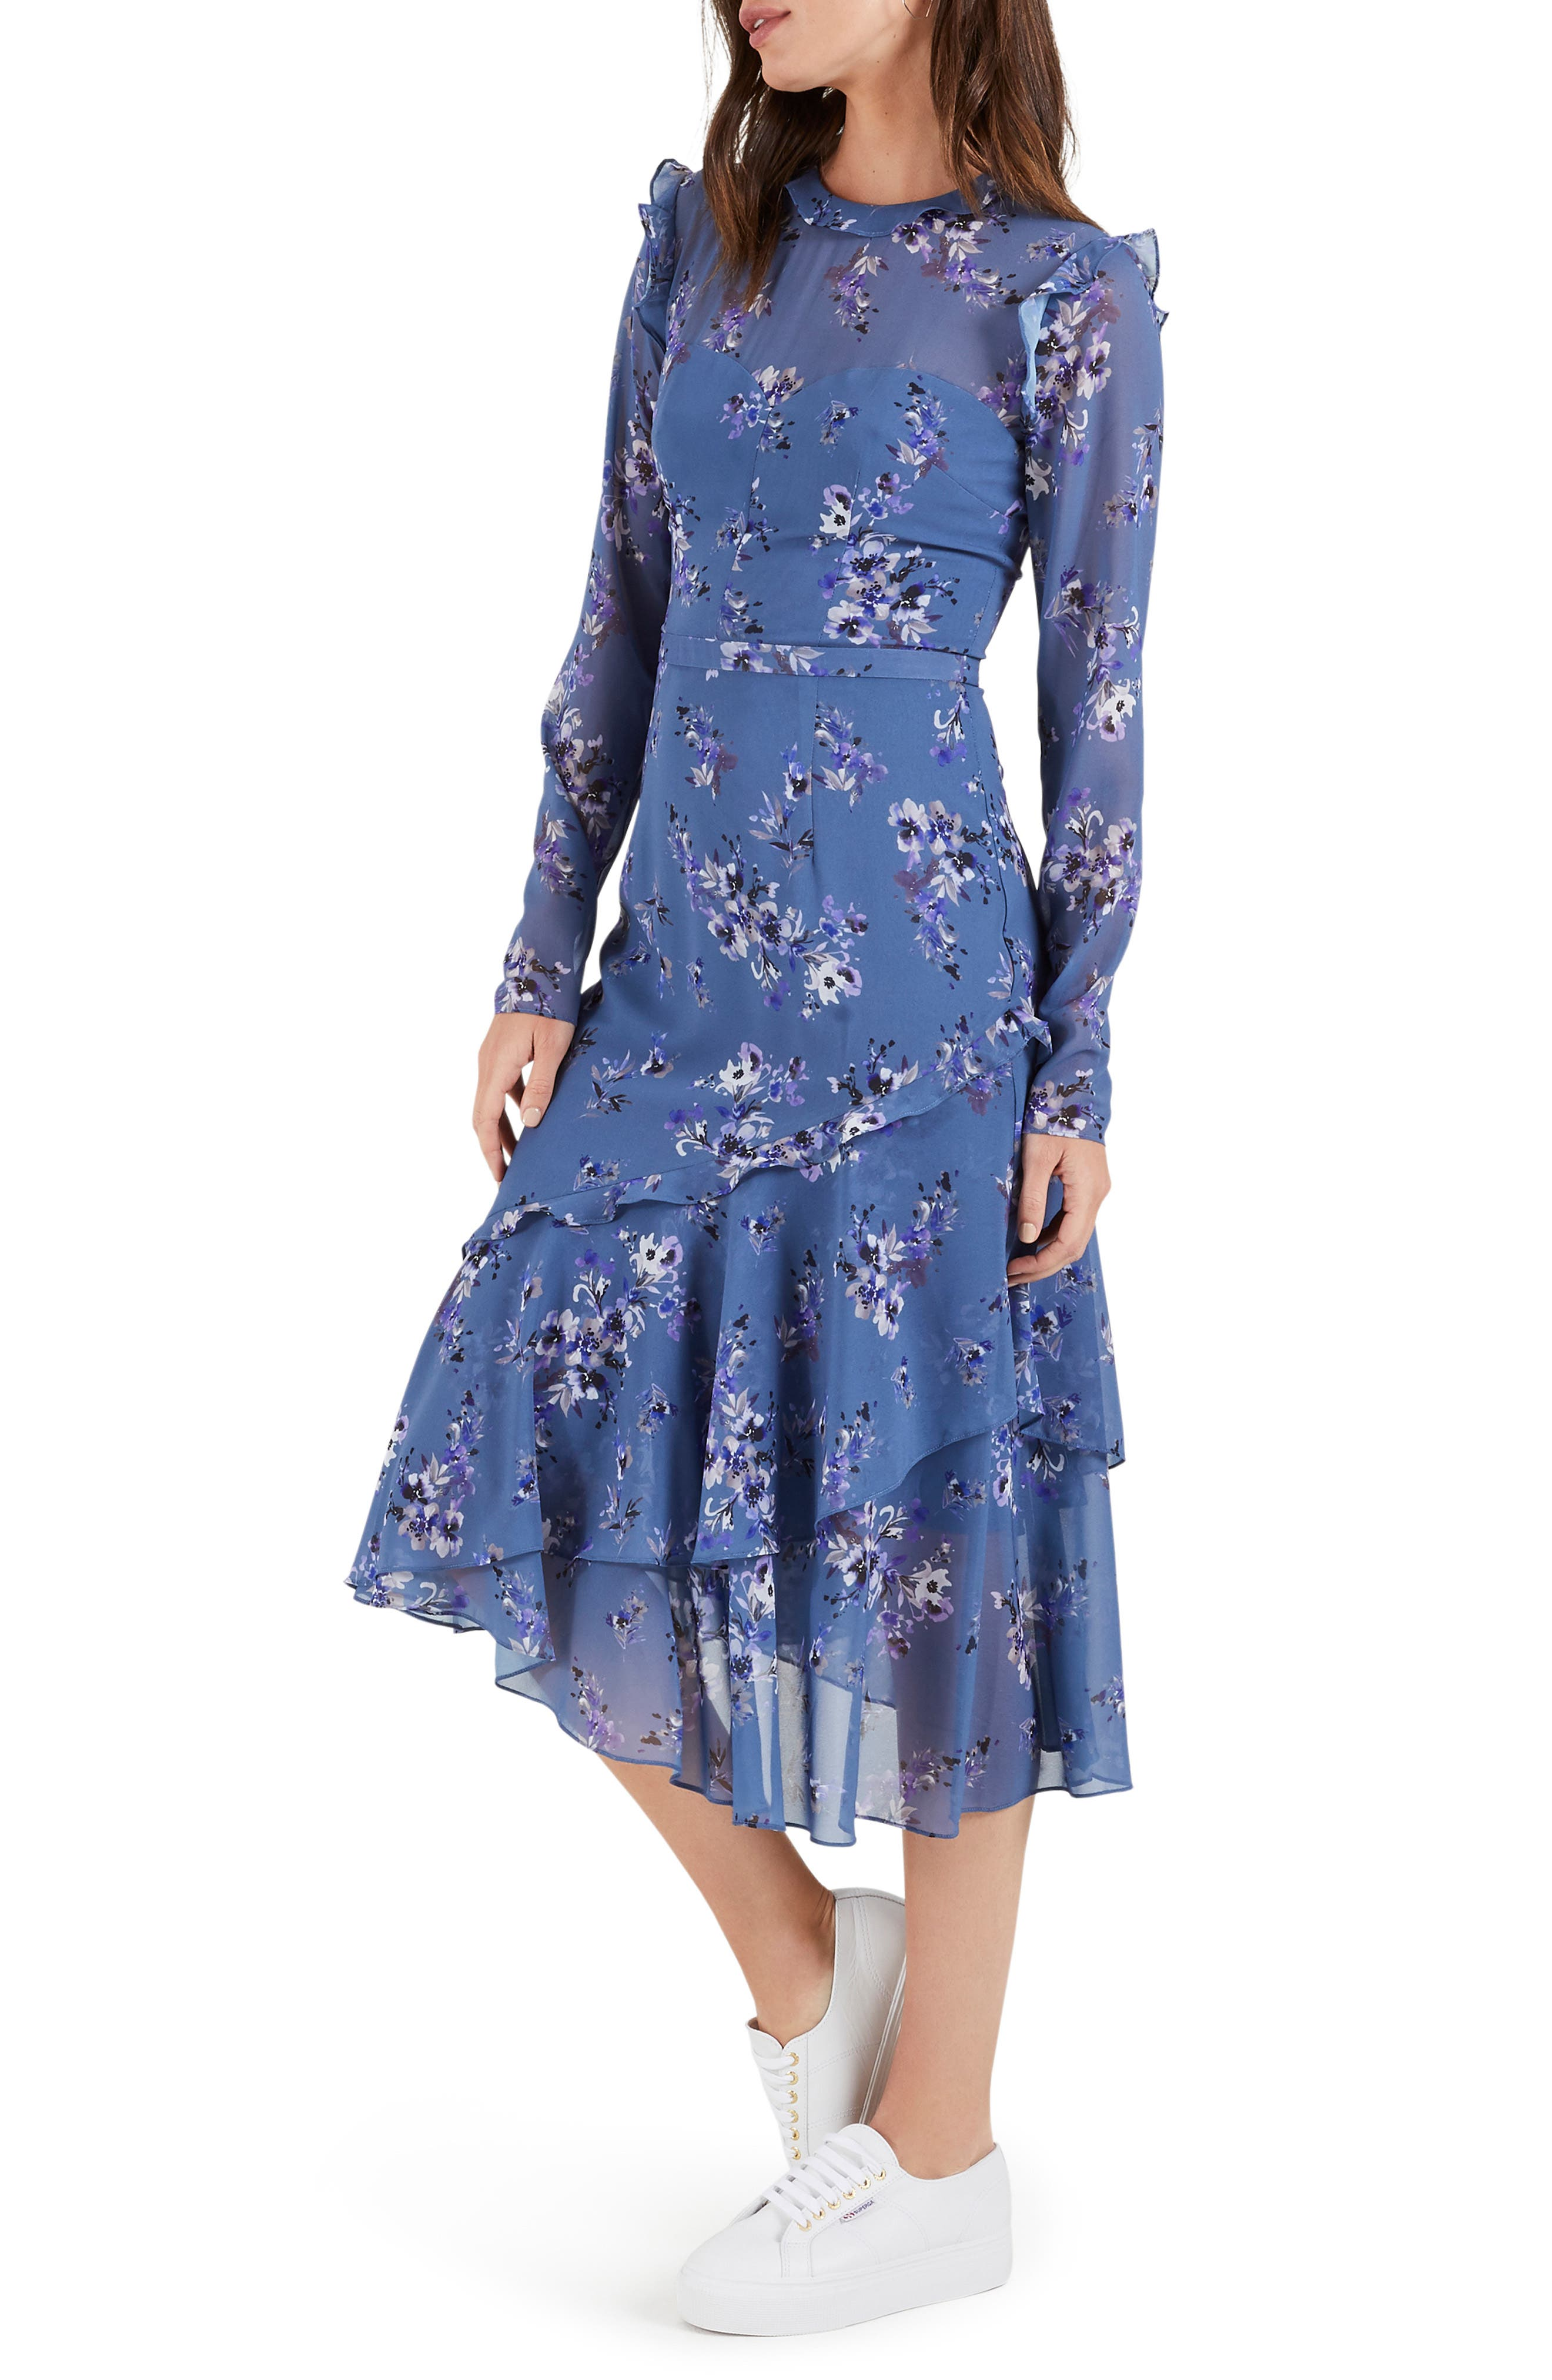 1930s Day Dresses, Afternoon Dresses History Womens Cooper St Heavenly Long Sleeve Ruffle Midi Dress $149.00 AT vintagedancer.com